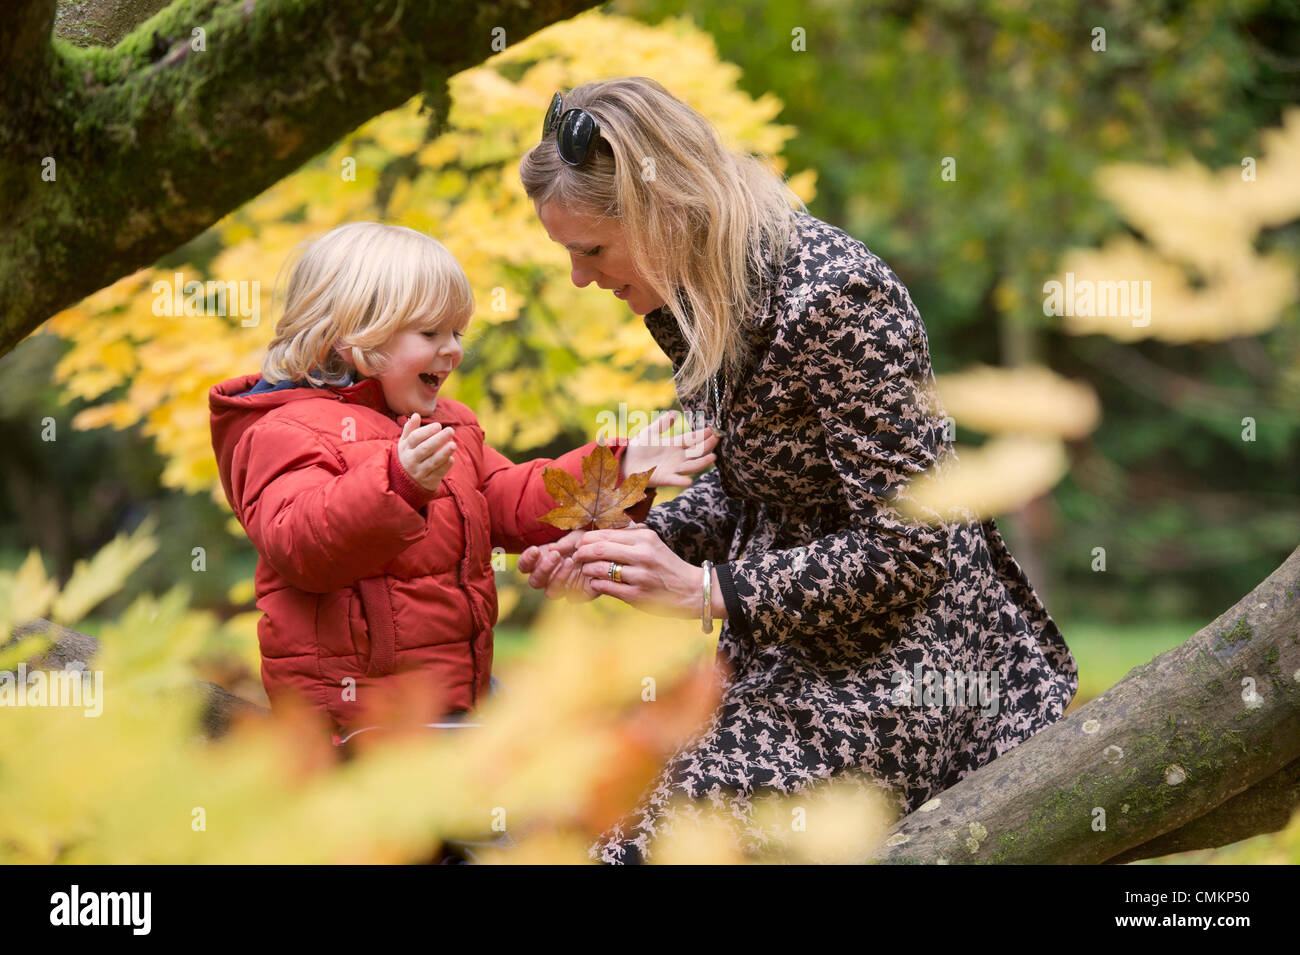 Autumn colour at Westonbirt Arboretum, Gloucestershire (2 Nov 2013). - A mother plays with leaves with her three - Stock Image